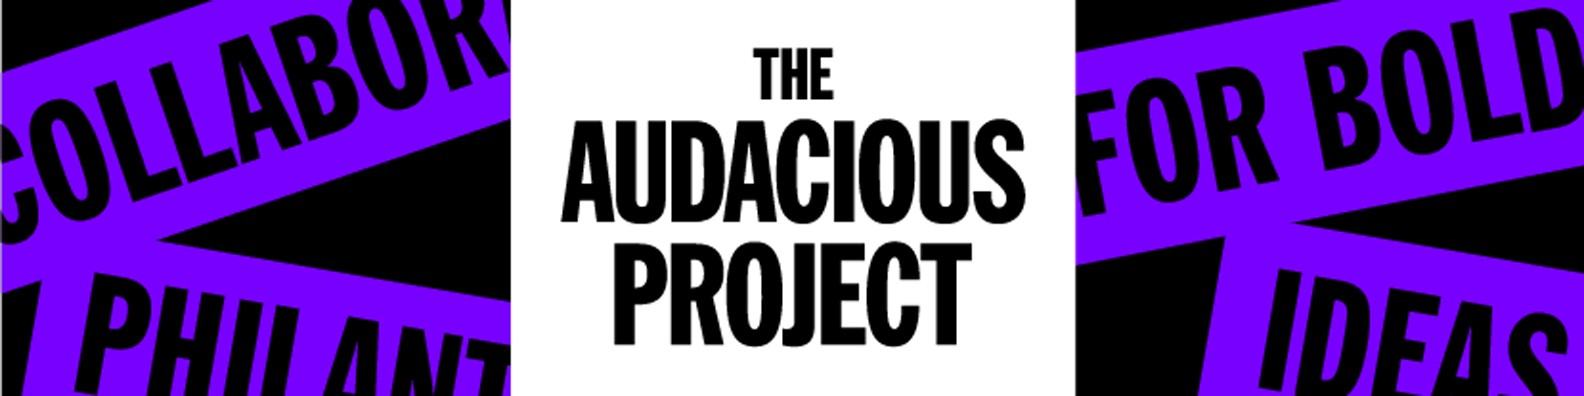 The Audacious Project | LinkedIn